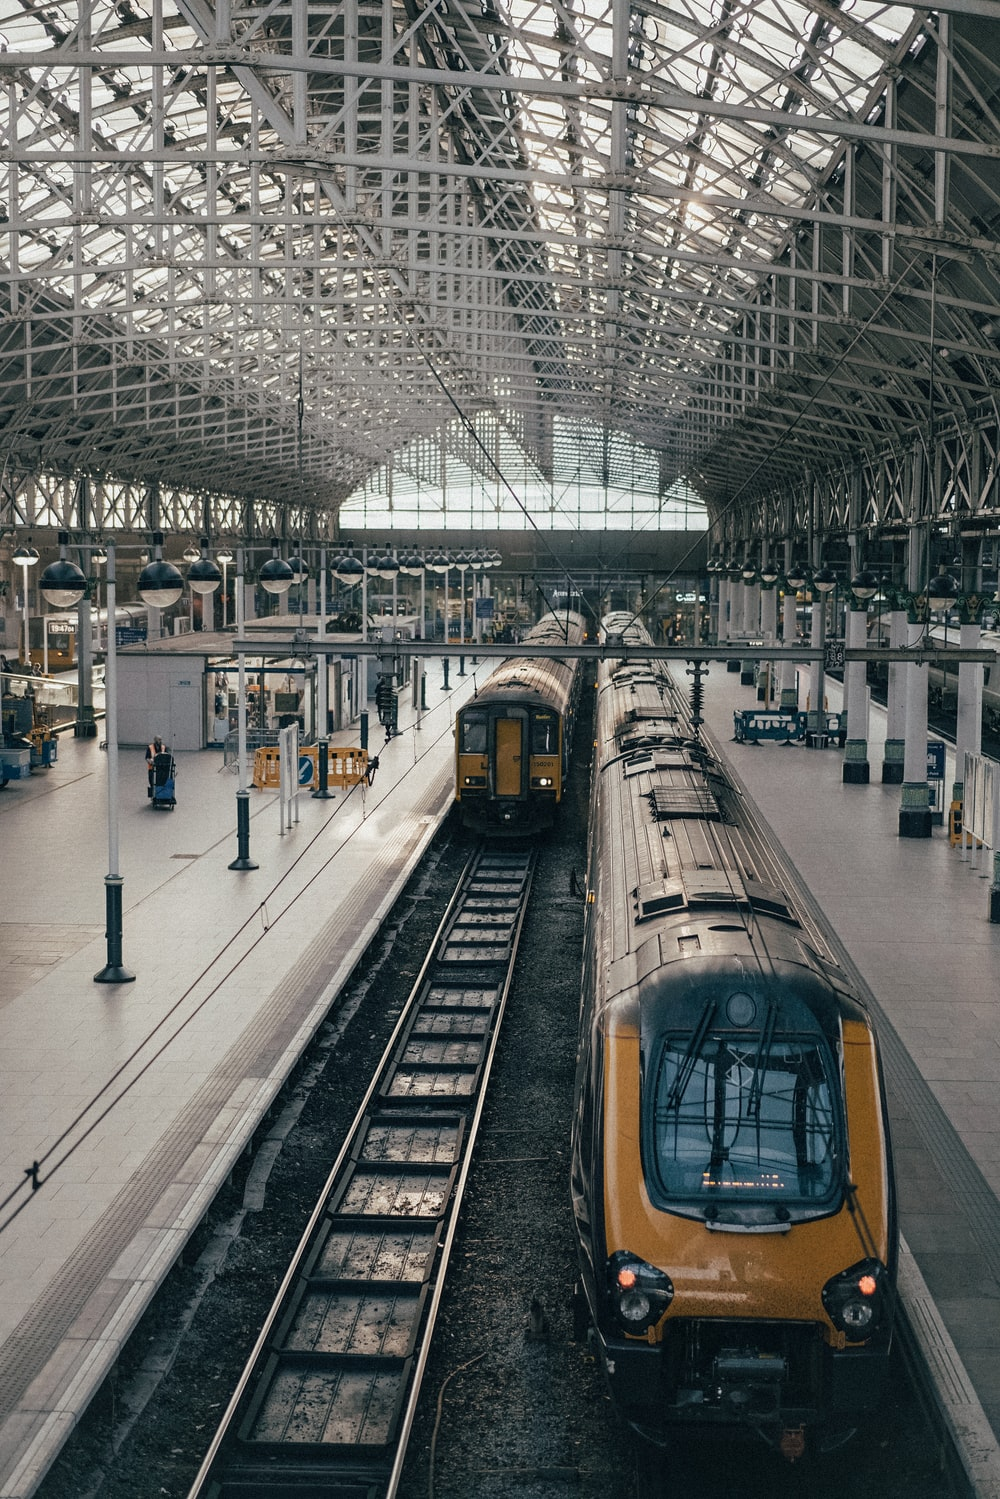 100 train pictures download free images on unsplash